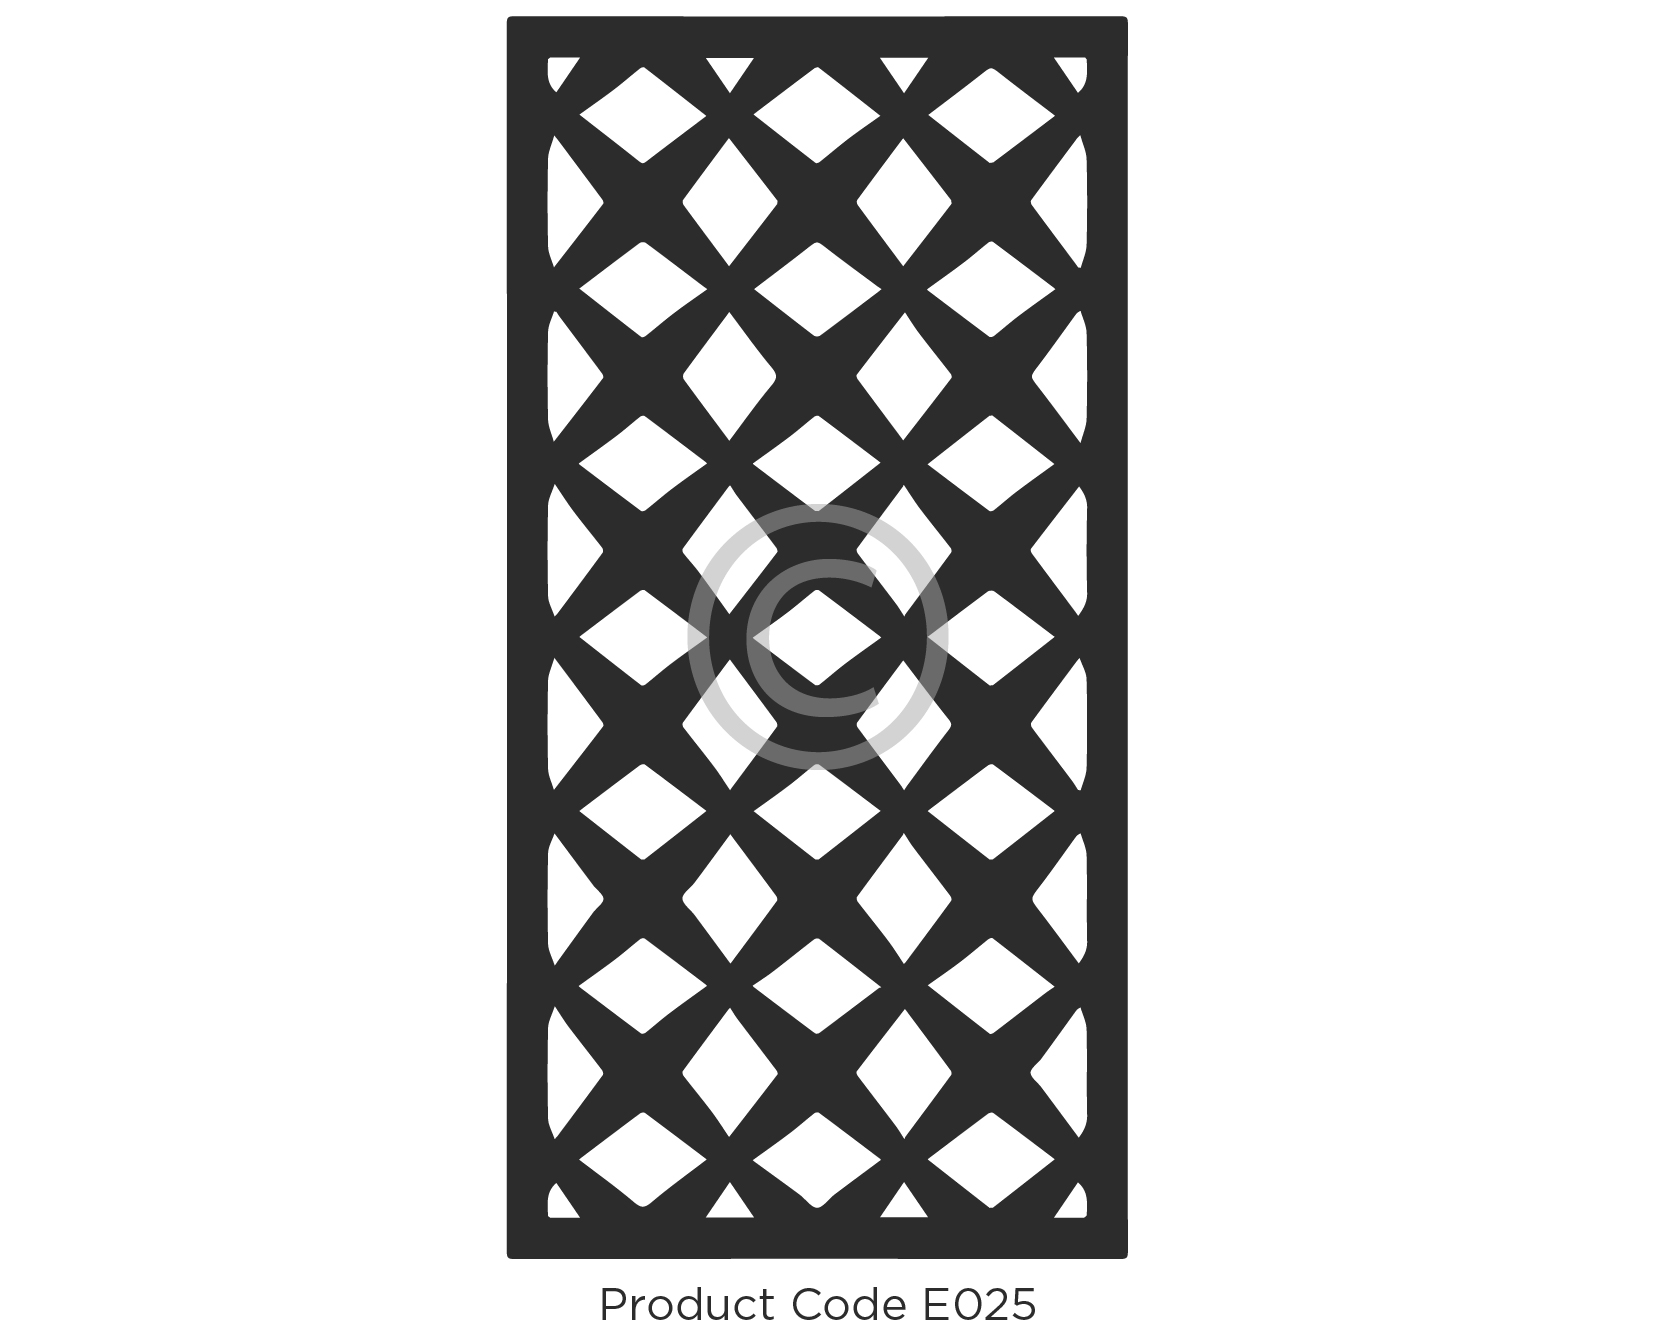 Elysium Decorative Screen Product Code E025 Geometric Design of crosses and diamonds